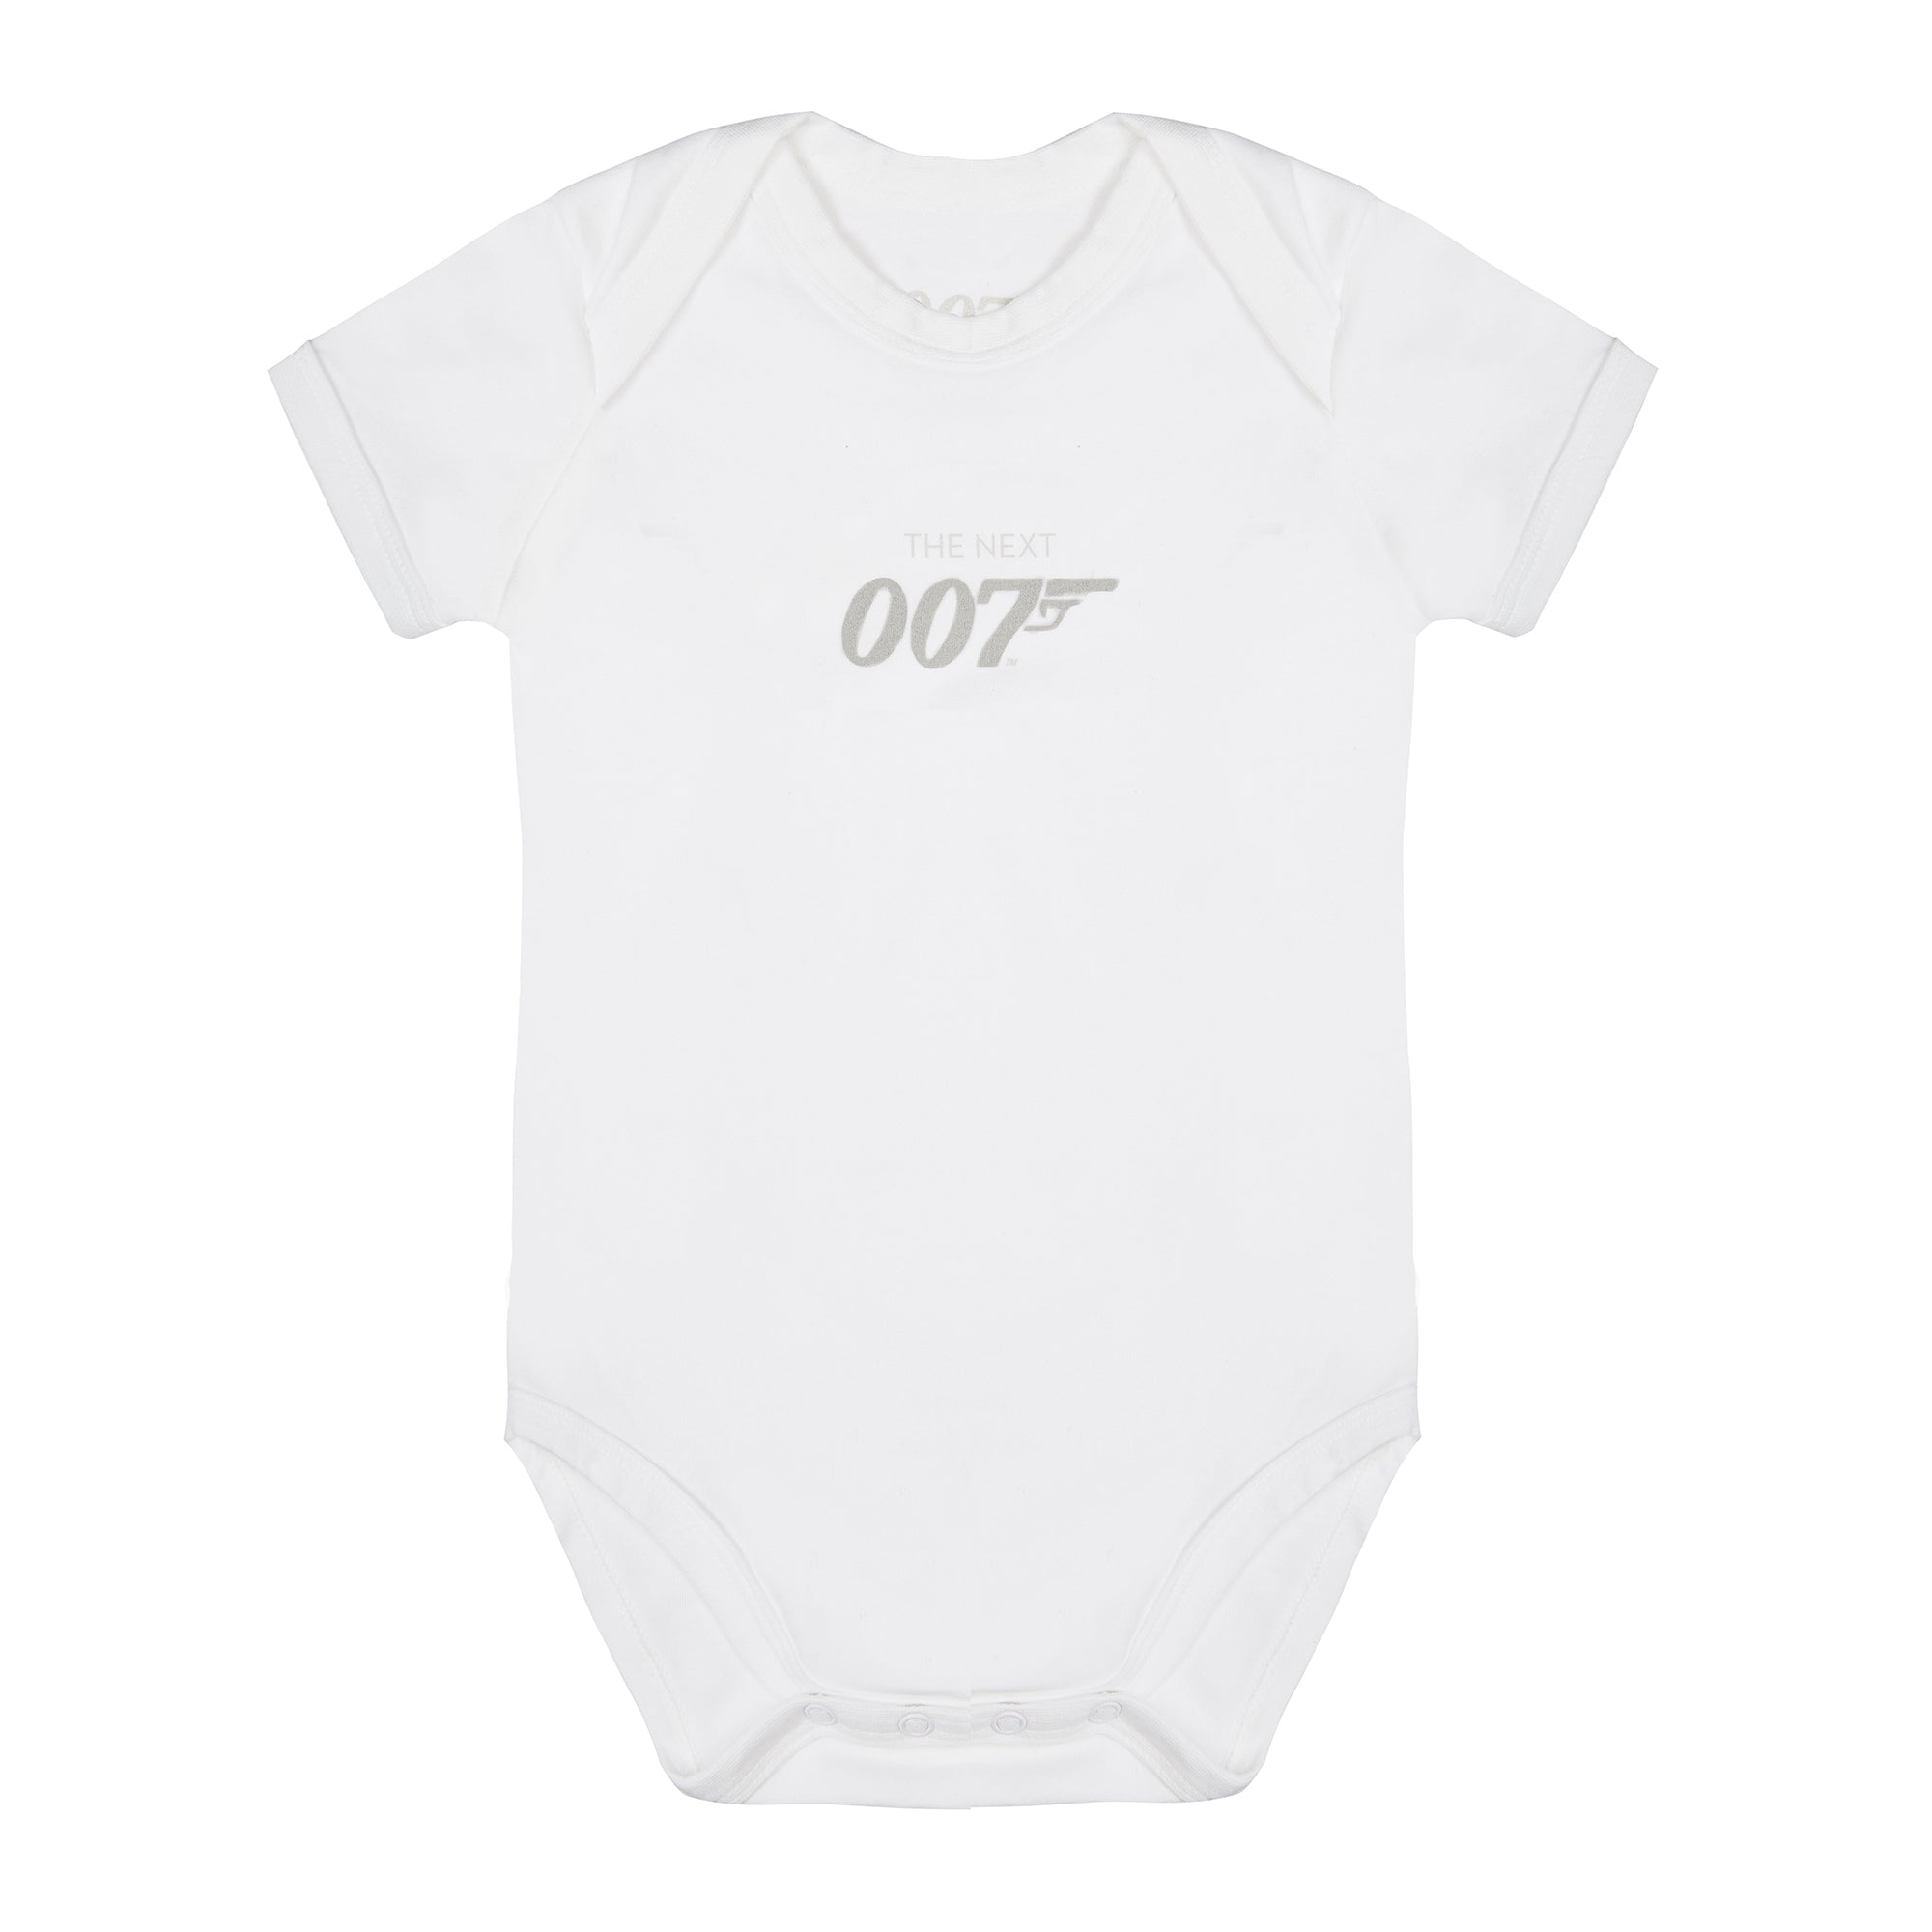 The Next 007 White Baby Bodysuit